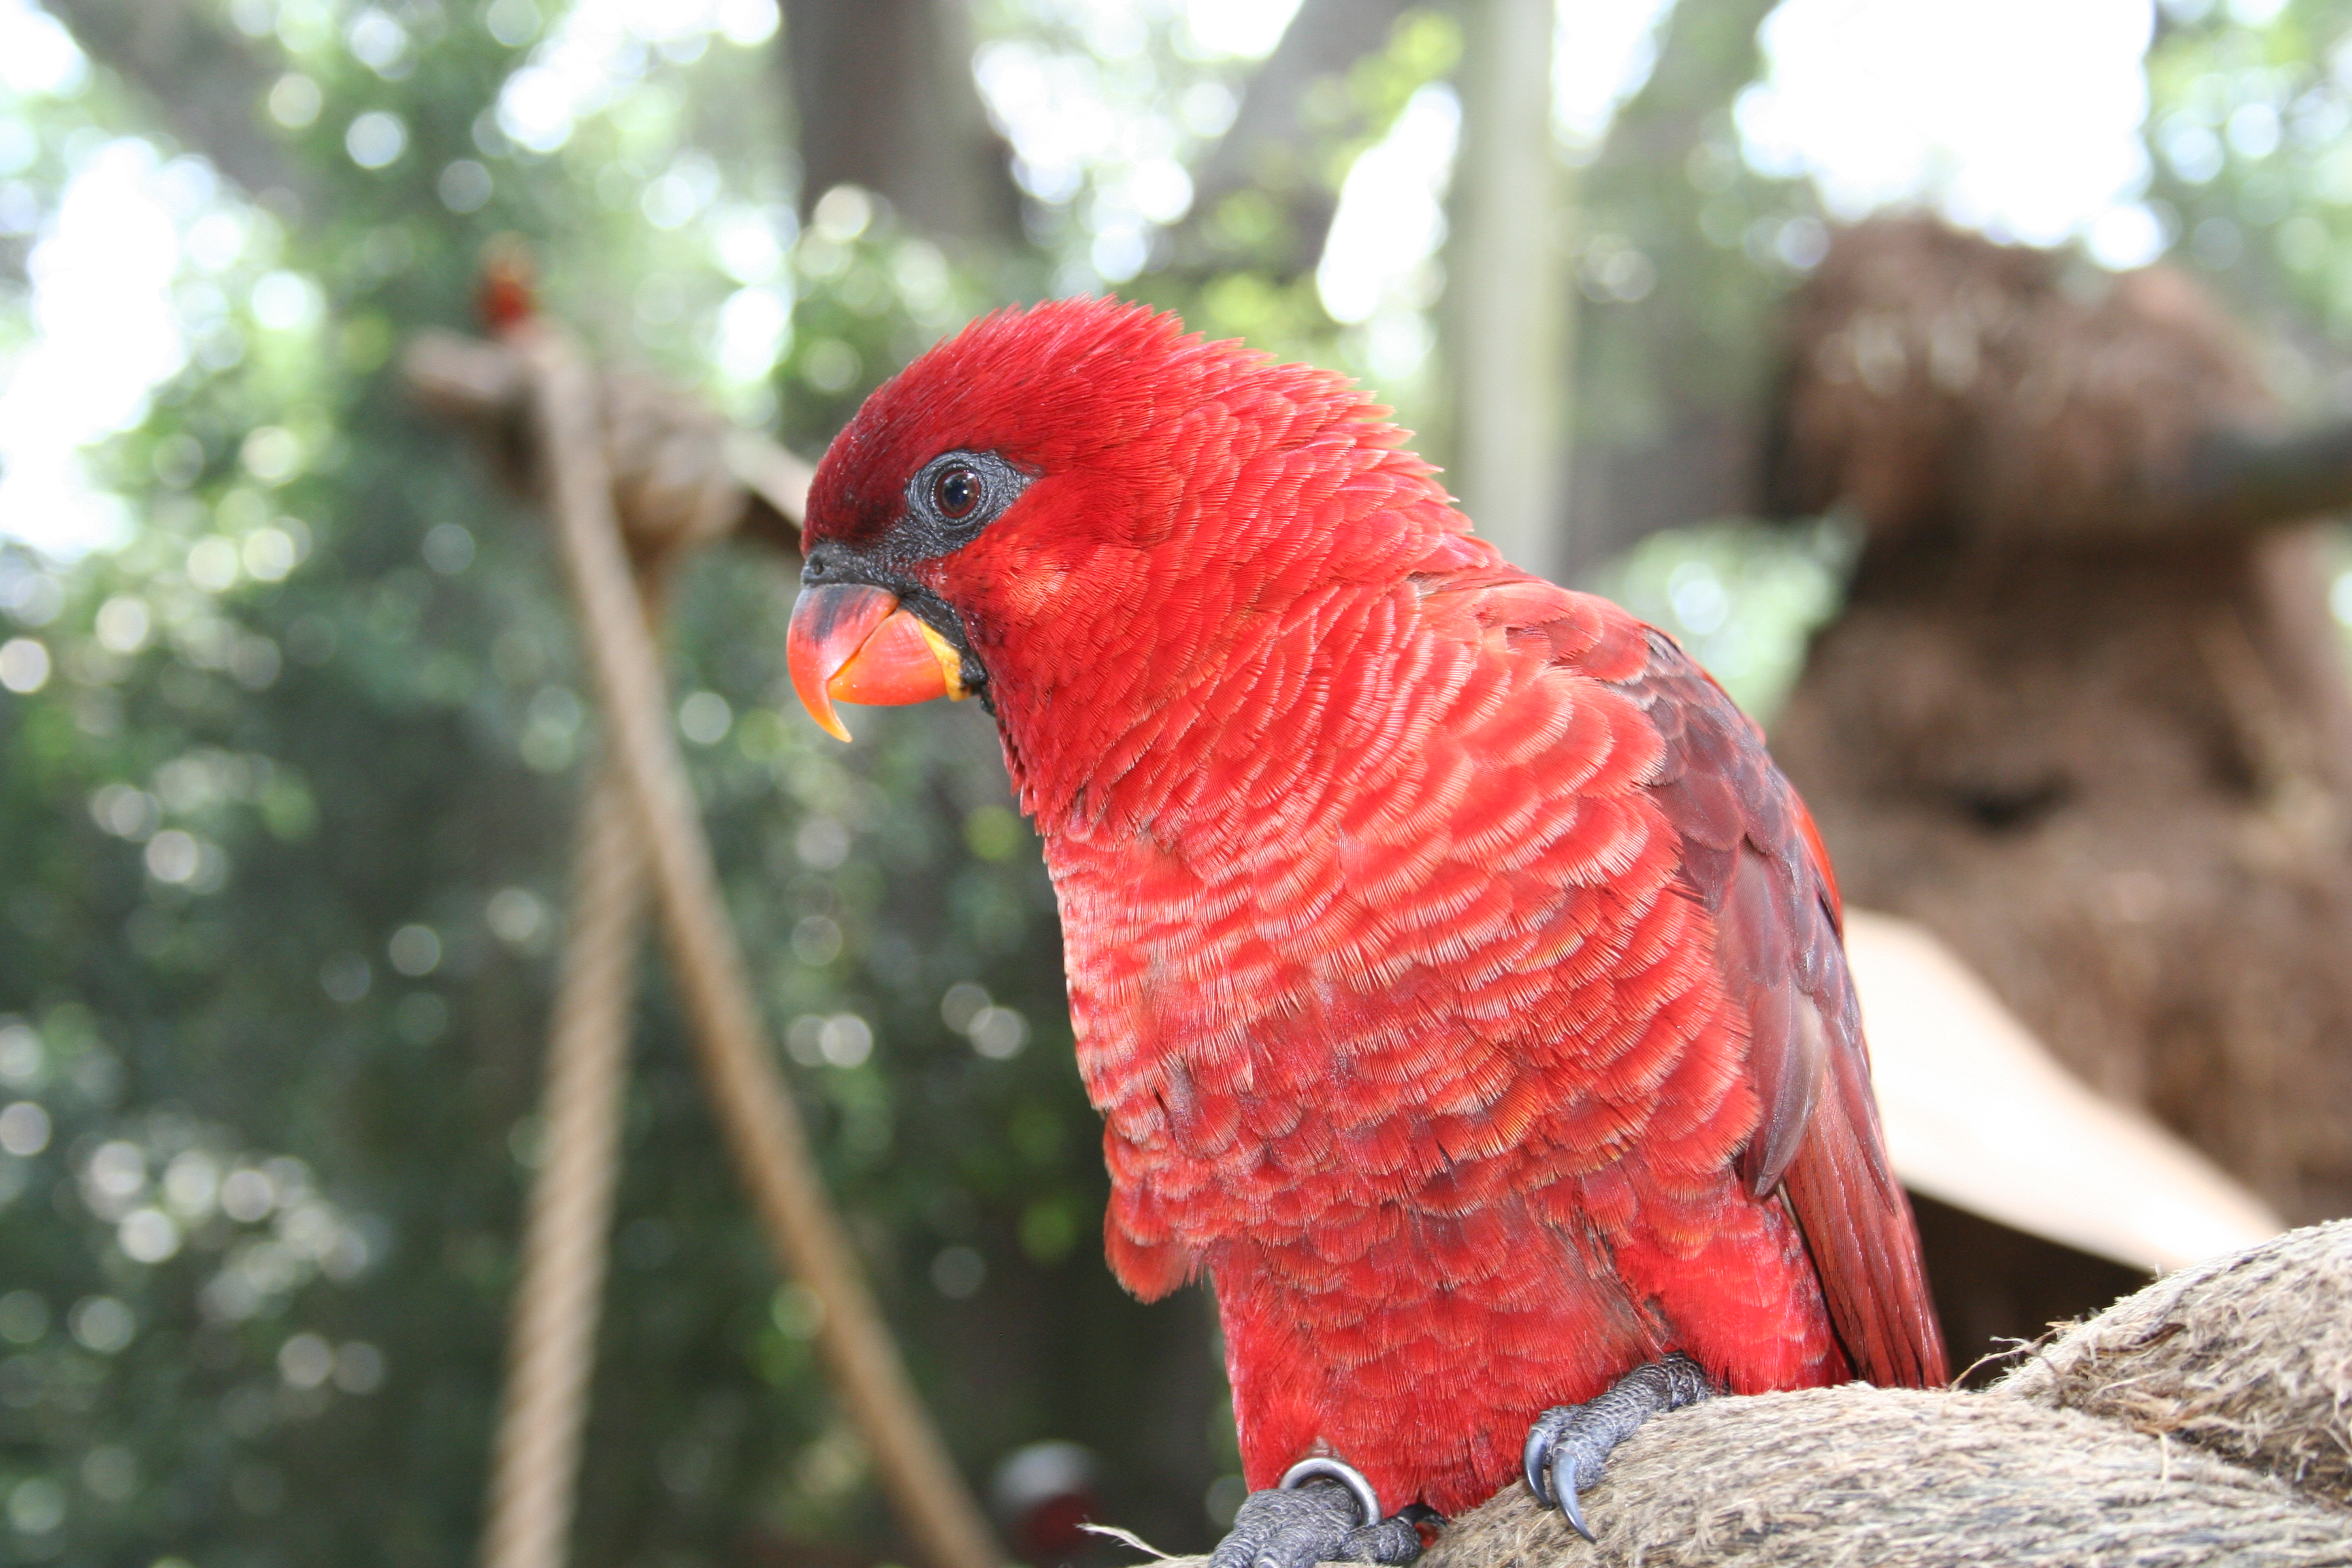 https://upload.wikimedia.org/wikipedia/commons/f/f1/Chalcopsitta_cardinalis_-Busch_Gardens%2C_Tampa_Bay%2C_USA_-upper_body-8a.jpg